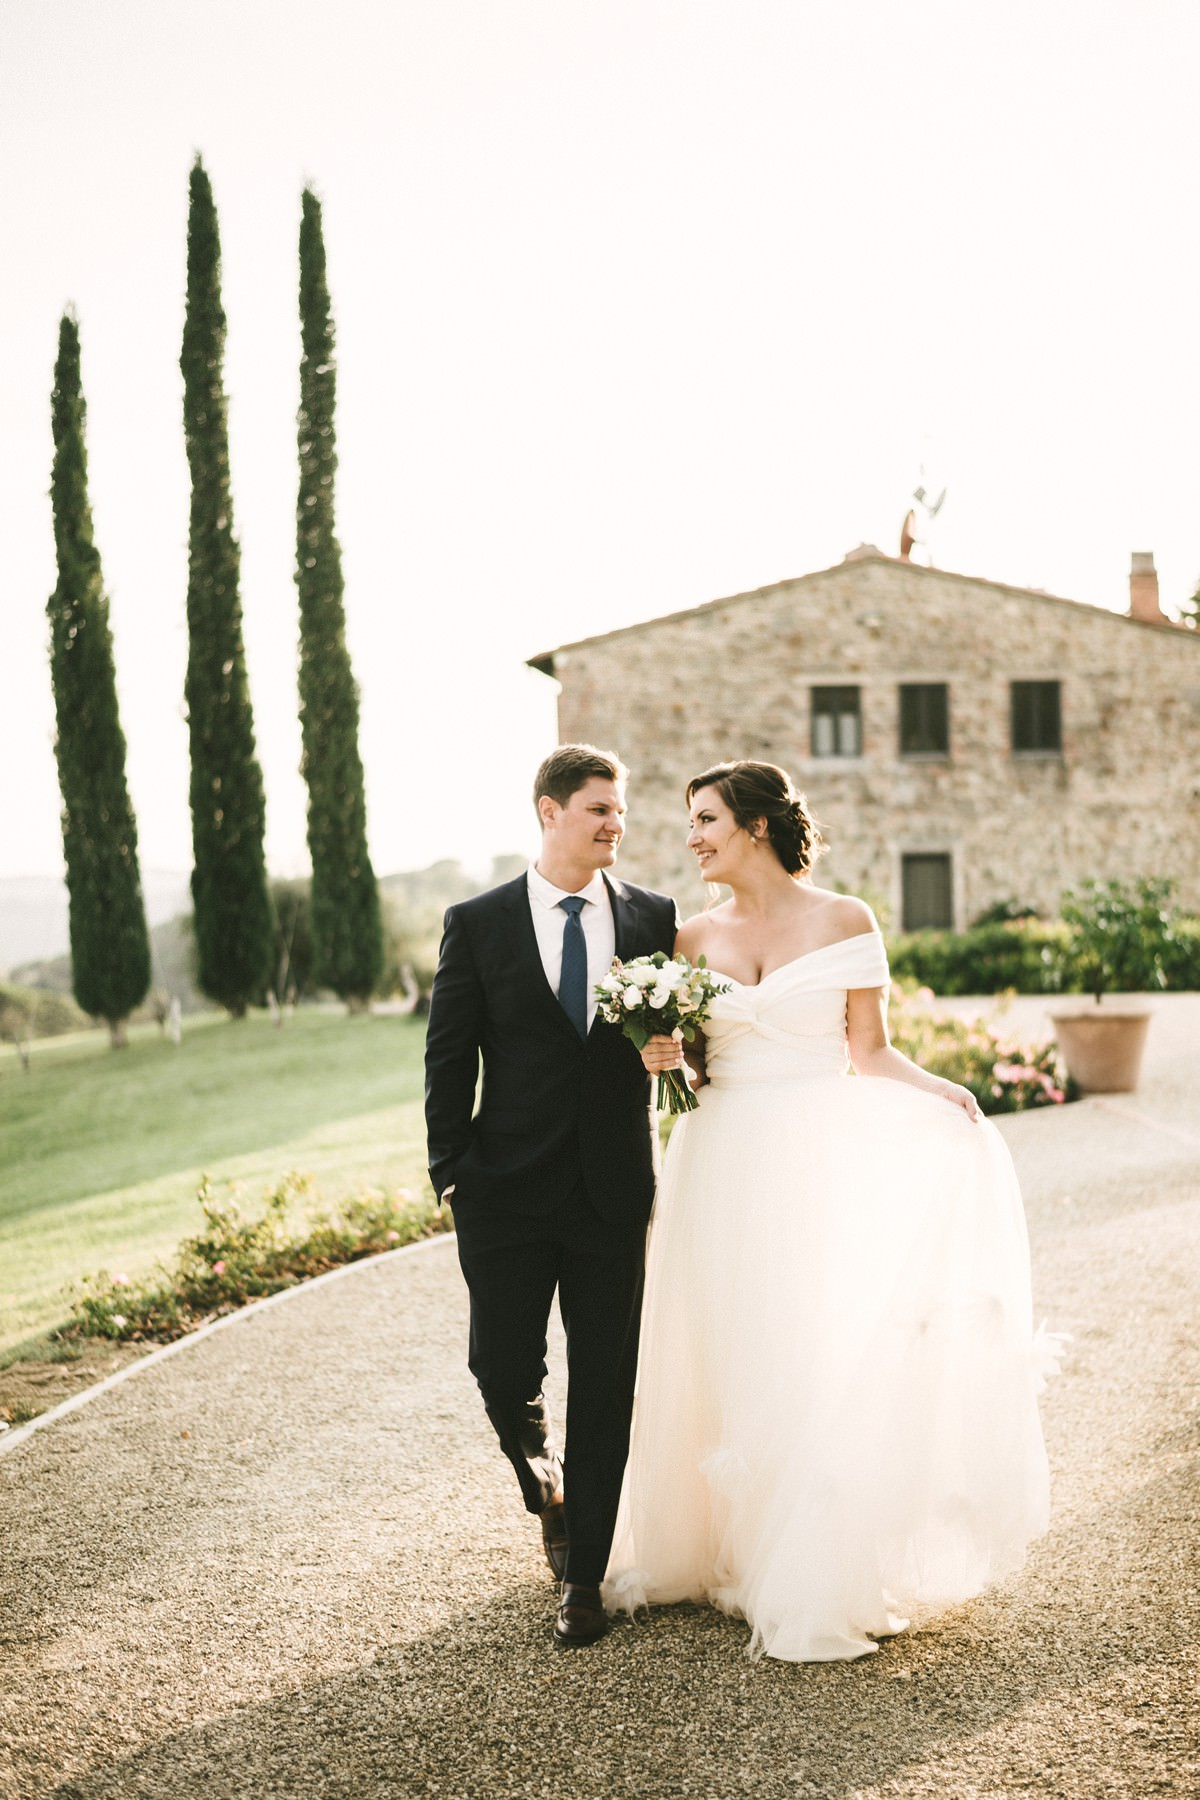 Bride and groom wedding photo at farmhouse Casetta in Chianti area near Florence, Tuscany